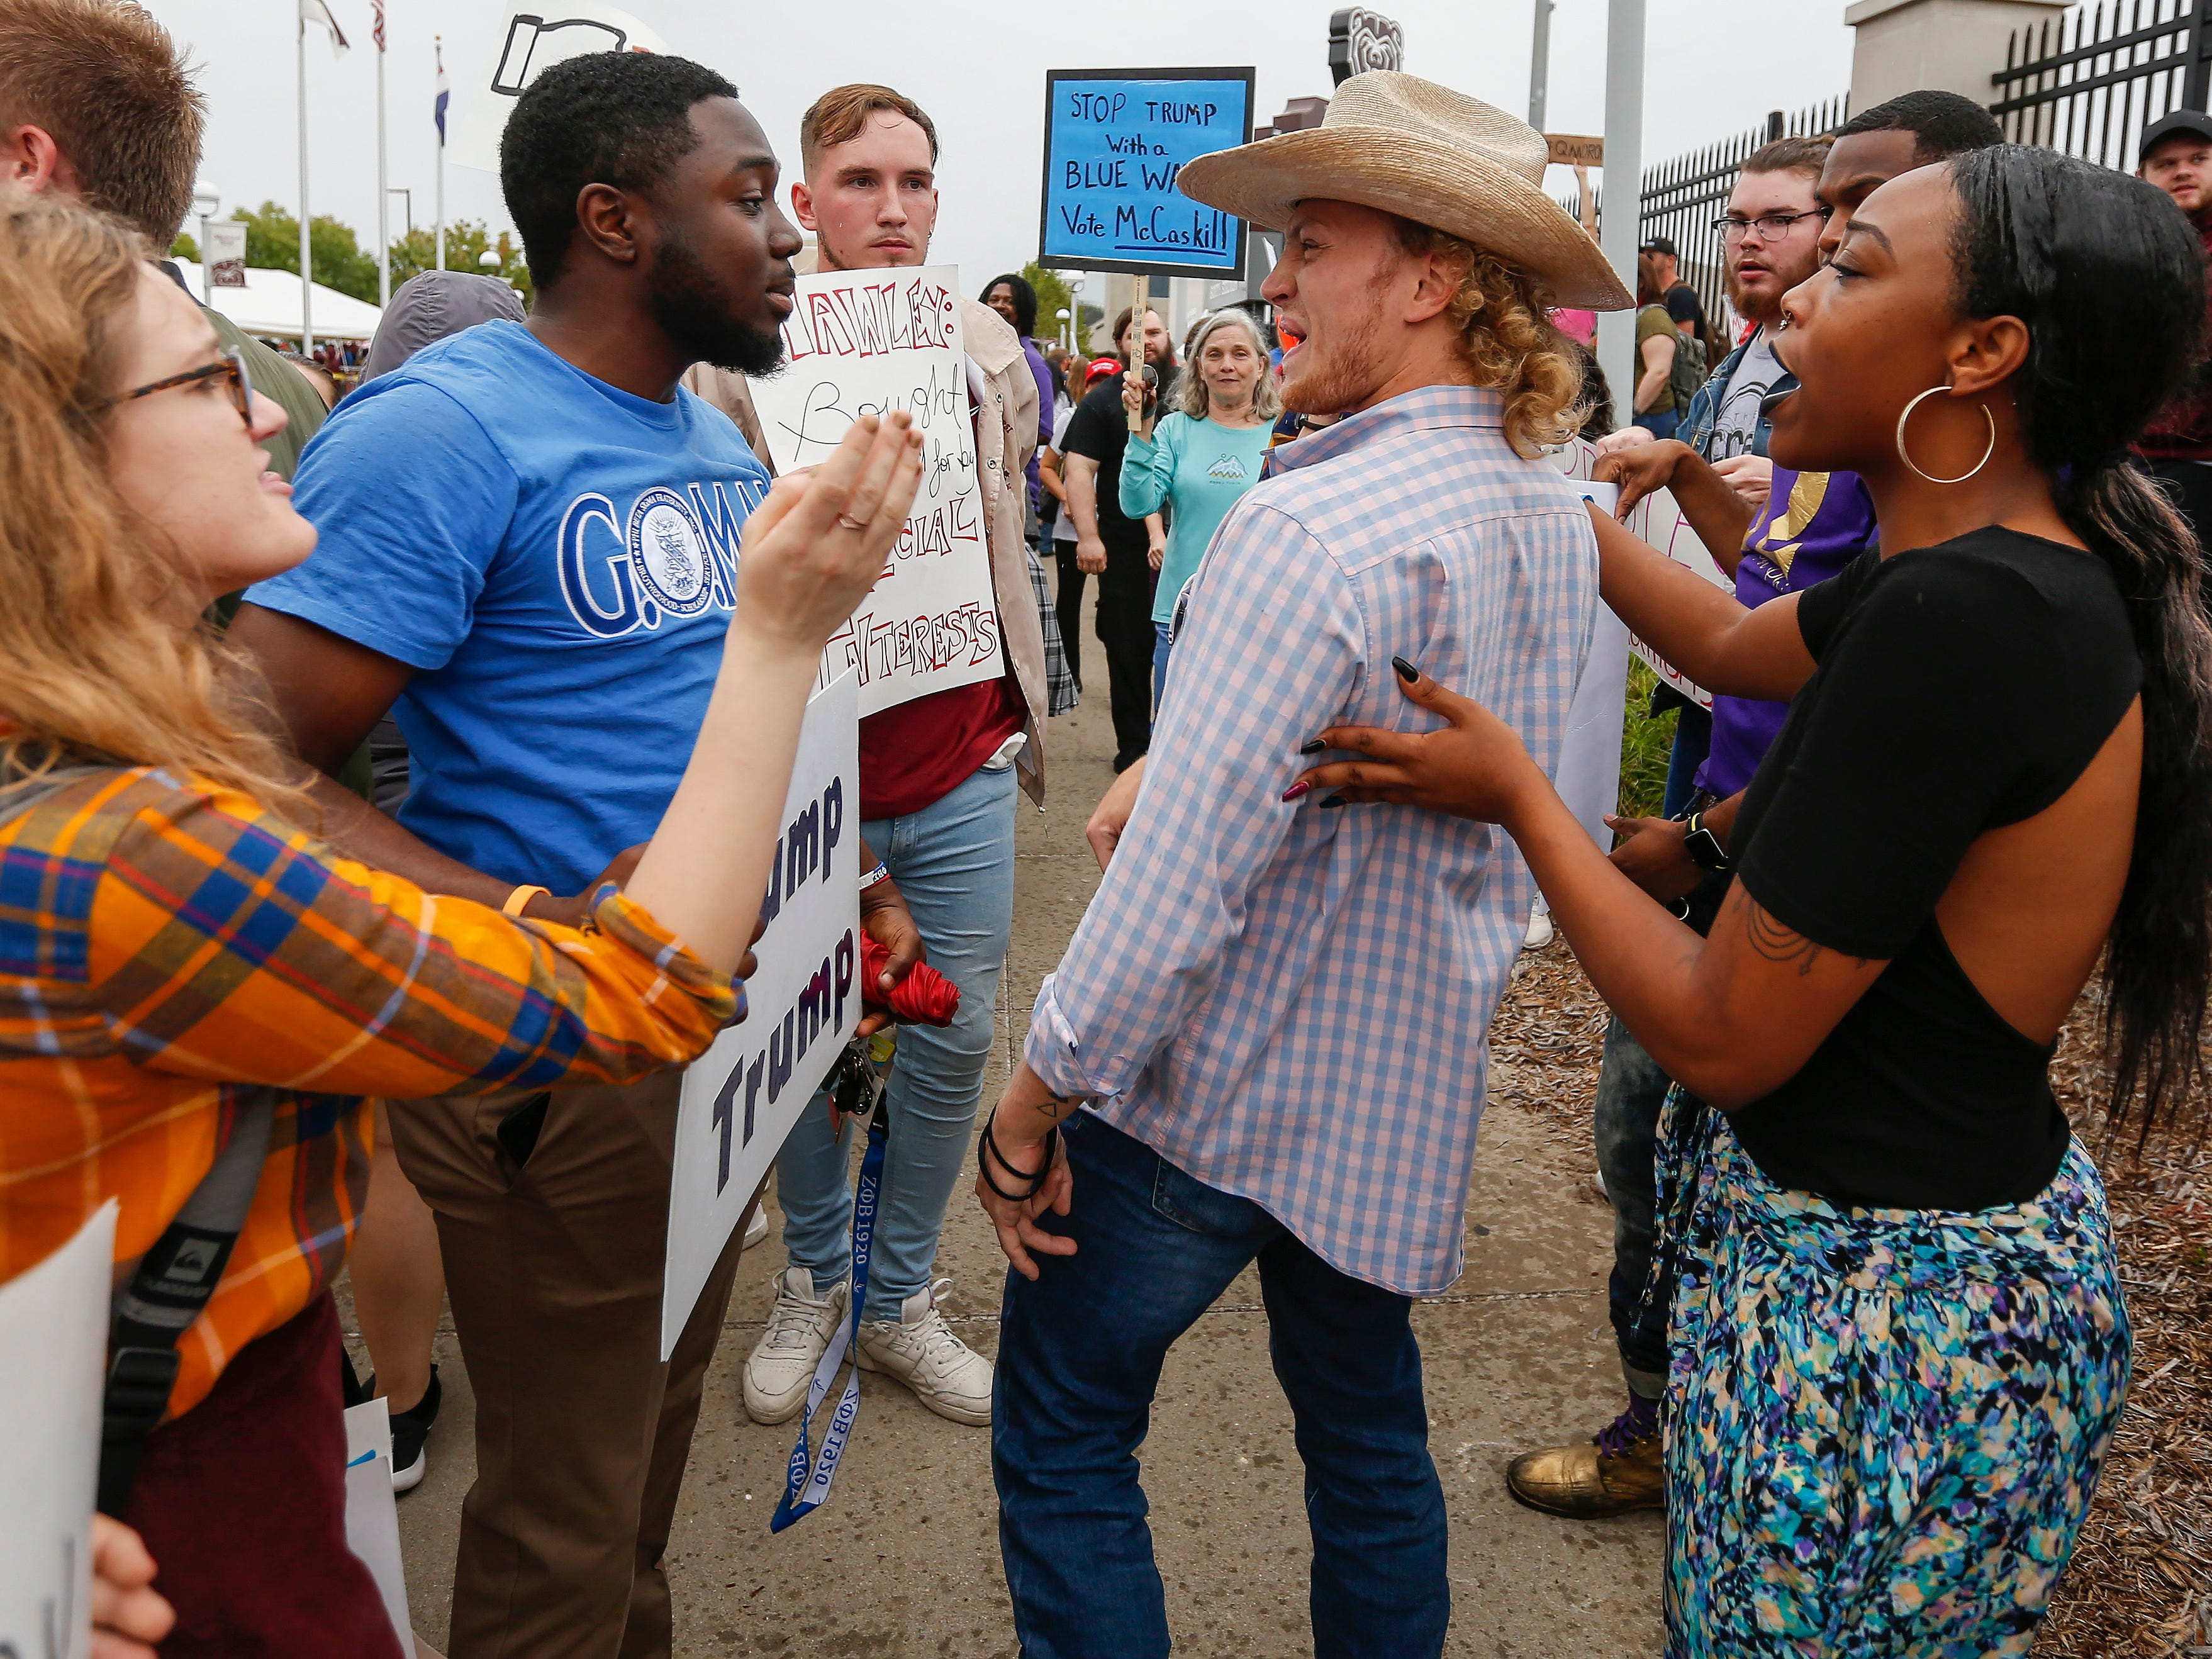 A Trump supporter confronts protesters outside of JQH Arena on the campus of Missouri State University where President Donald Trump was speaking on Friday, Sep. 21, 2018.